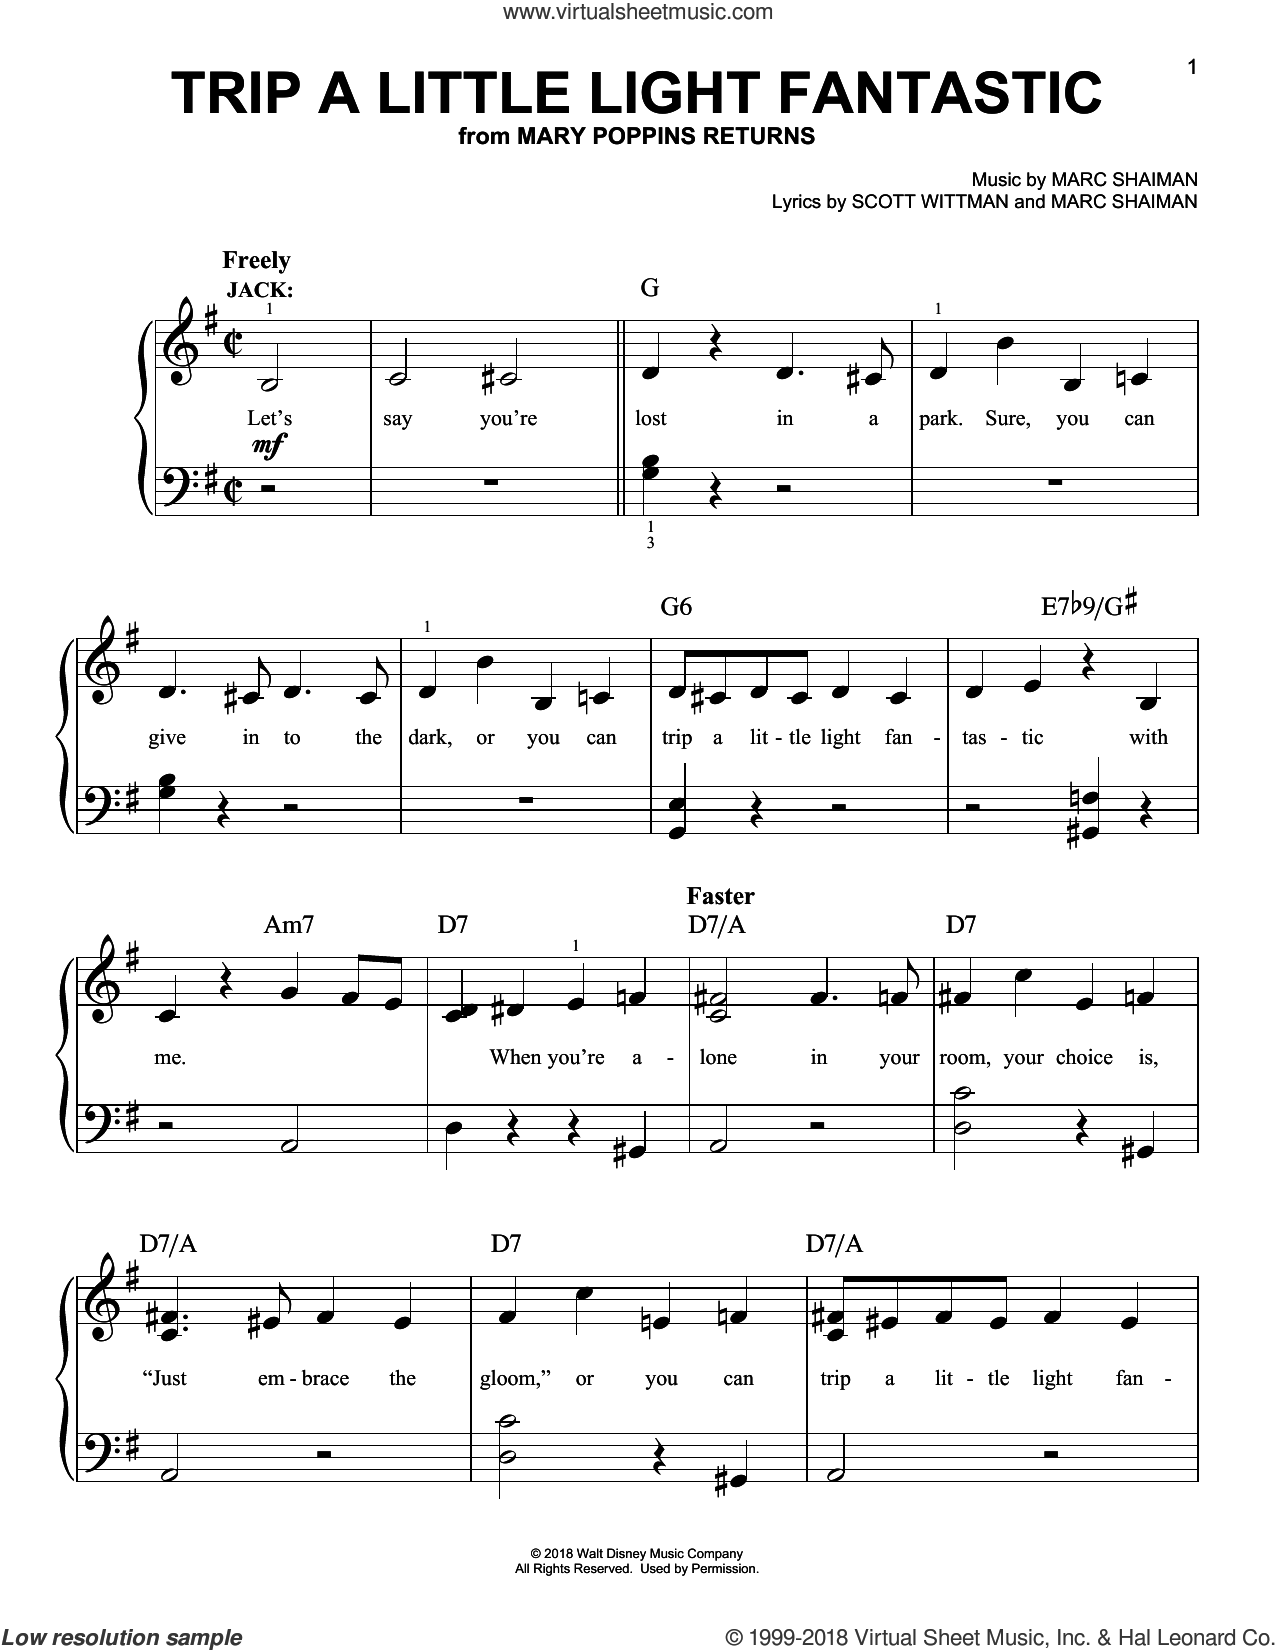 Trip A Little Light Fantastic (from Mary Poppins Returns) sheet music for piano solo by Lin-Manuel Miranda, Marc Shaiman and Scott Wittman, easy skill level